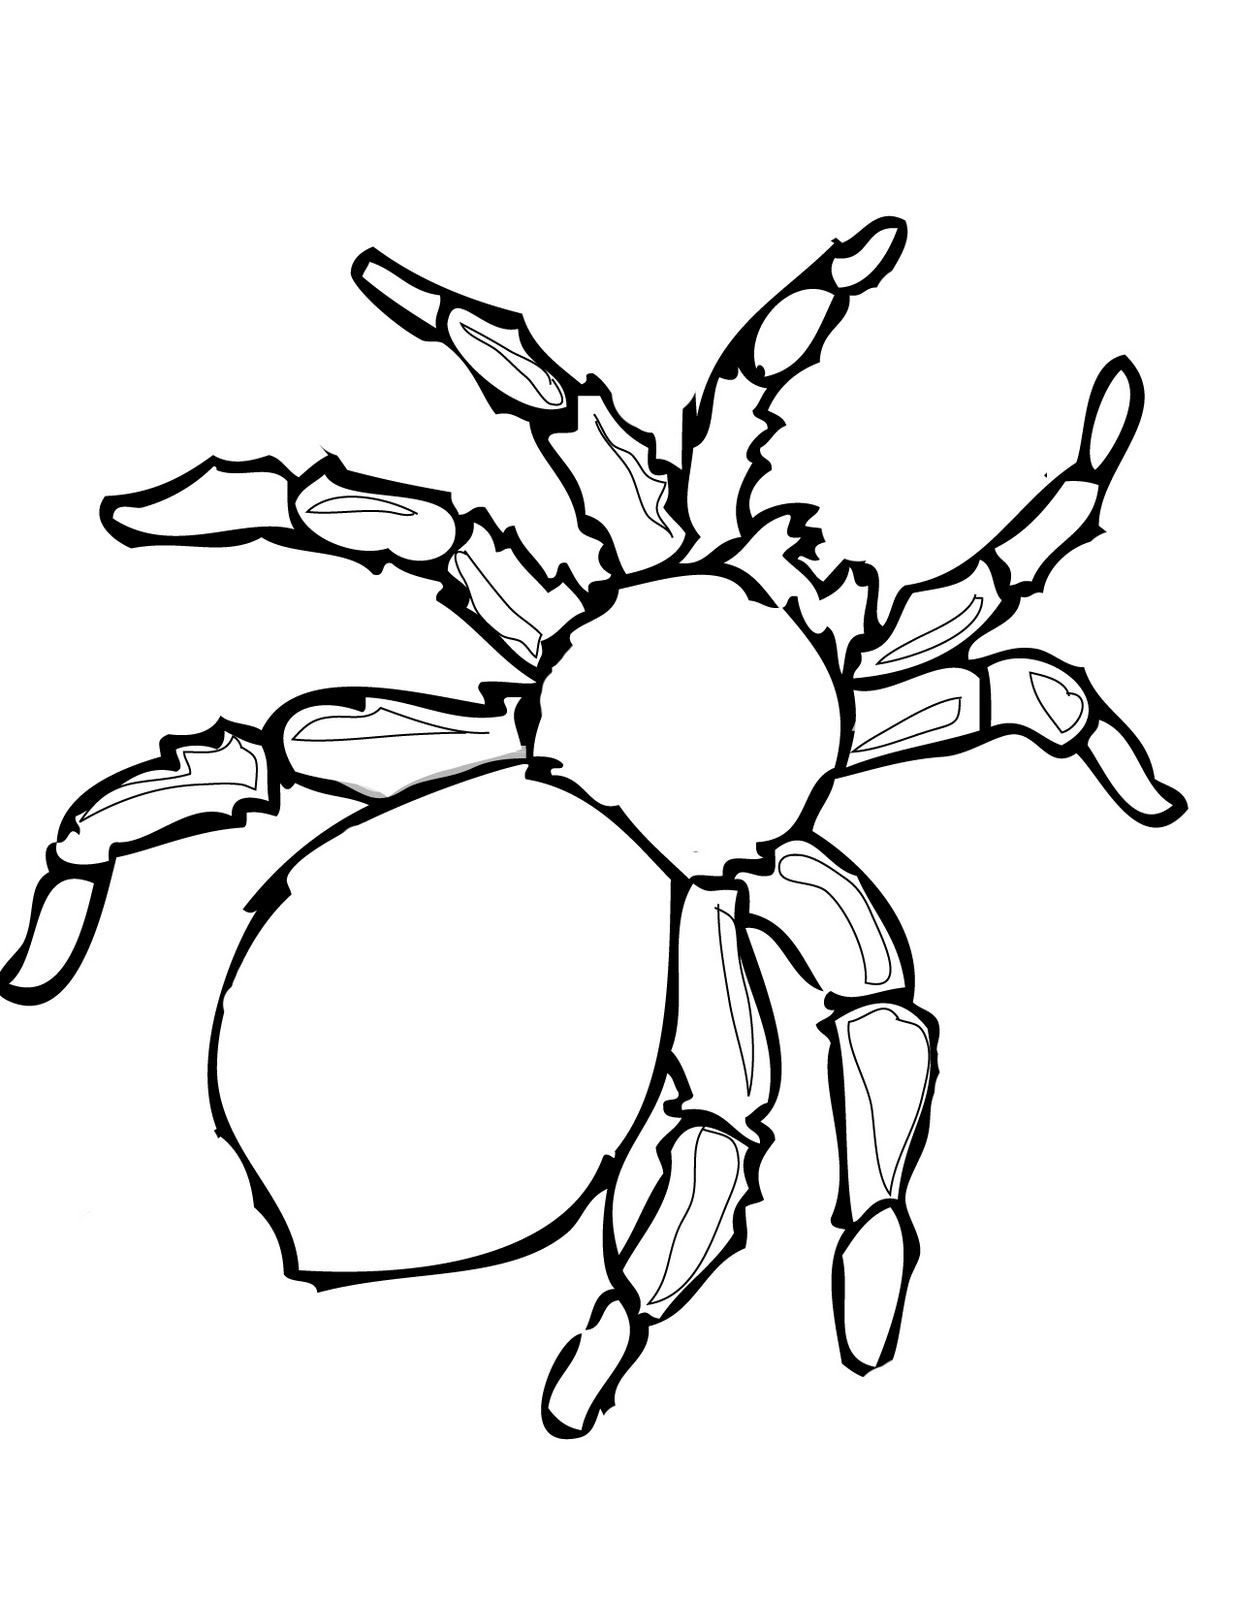 It is a picture of Handy Spider Template Printable